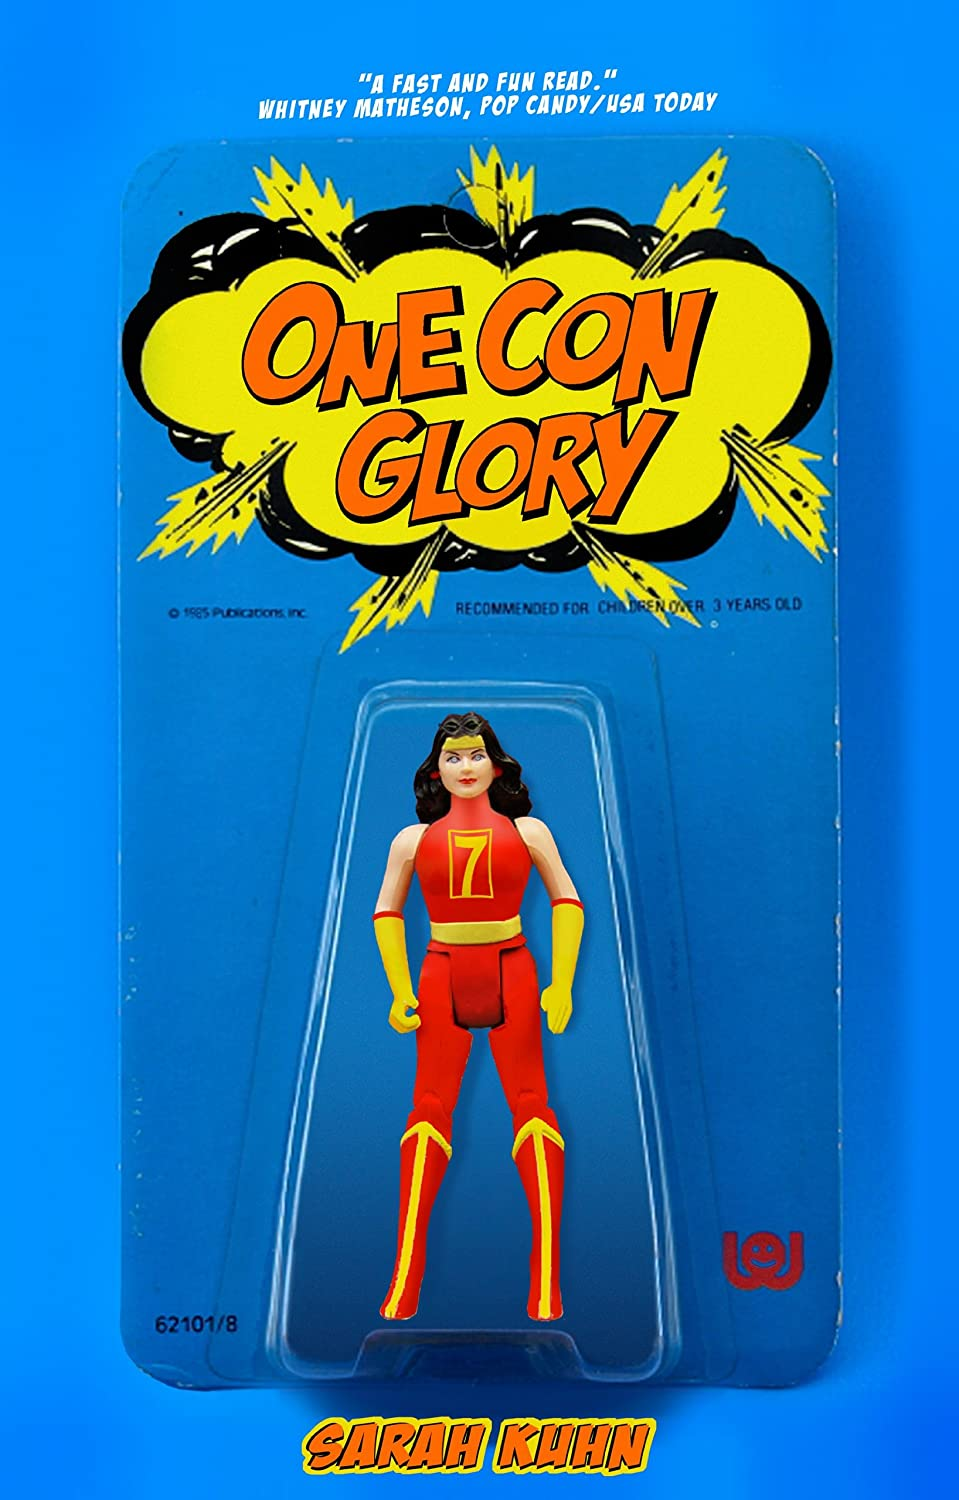 The cover of One Con Glory